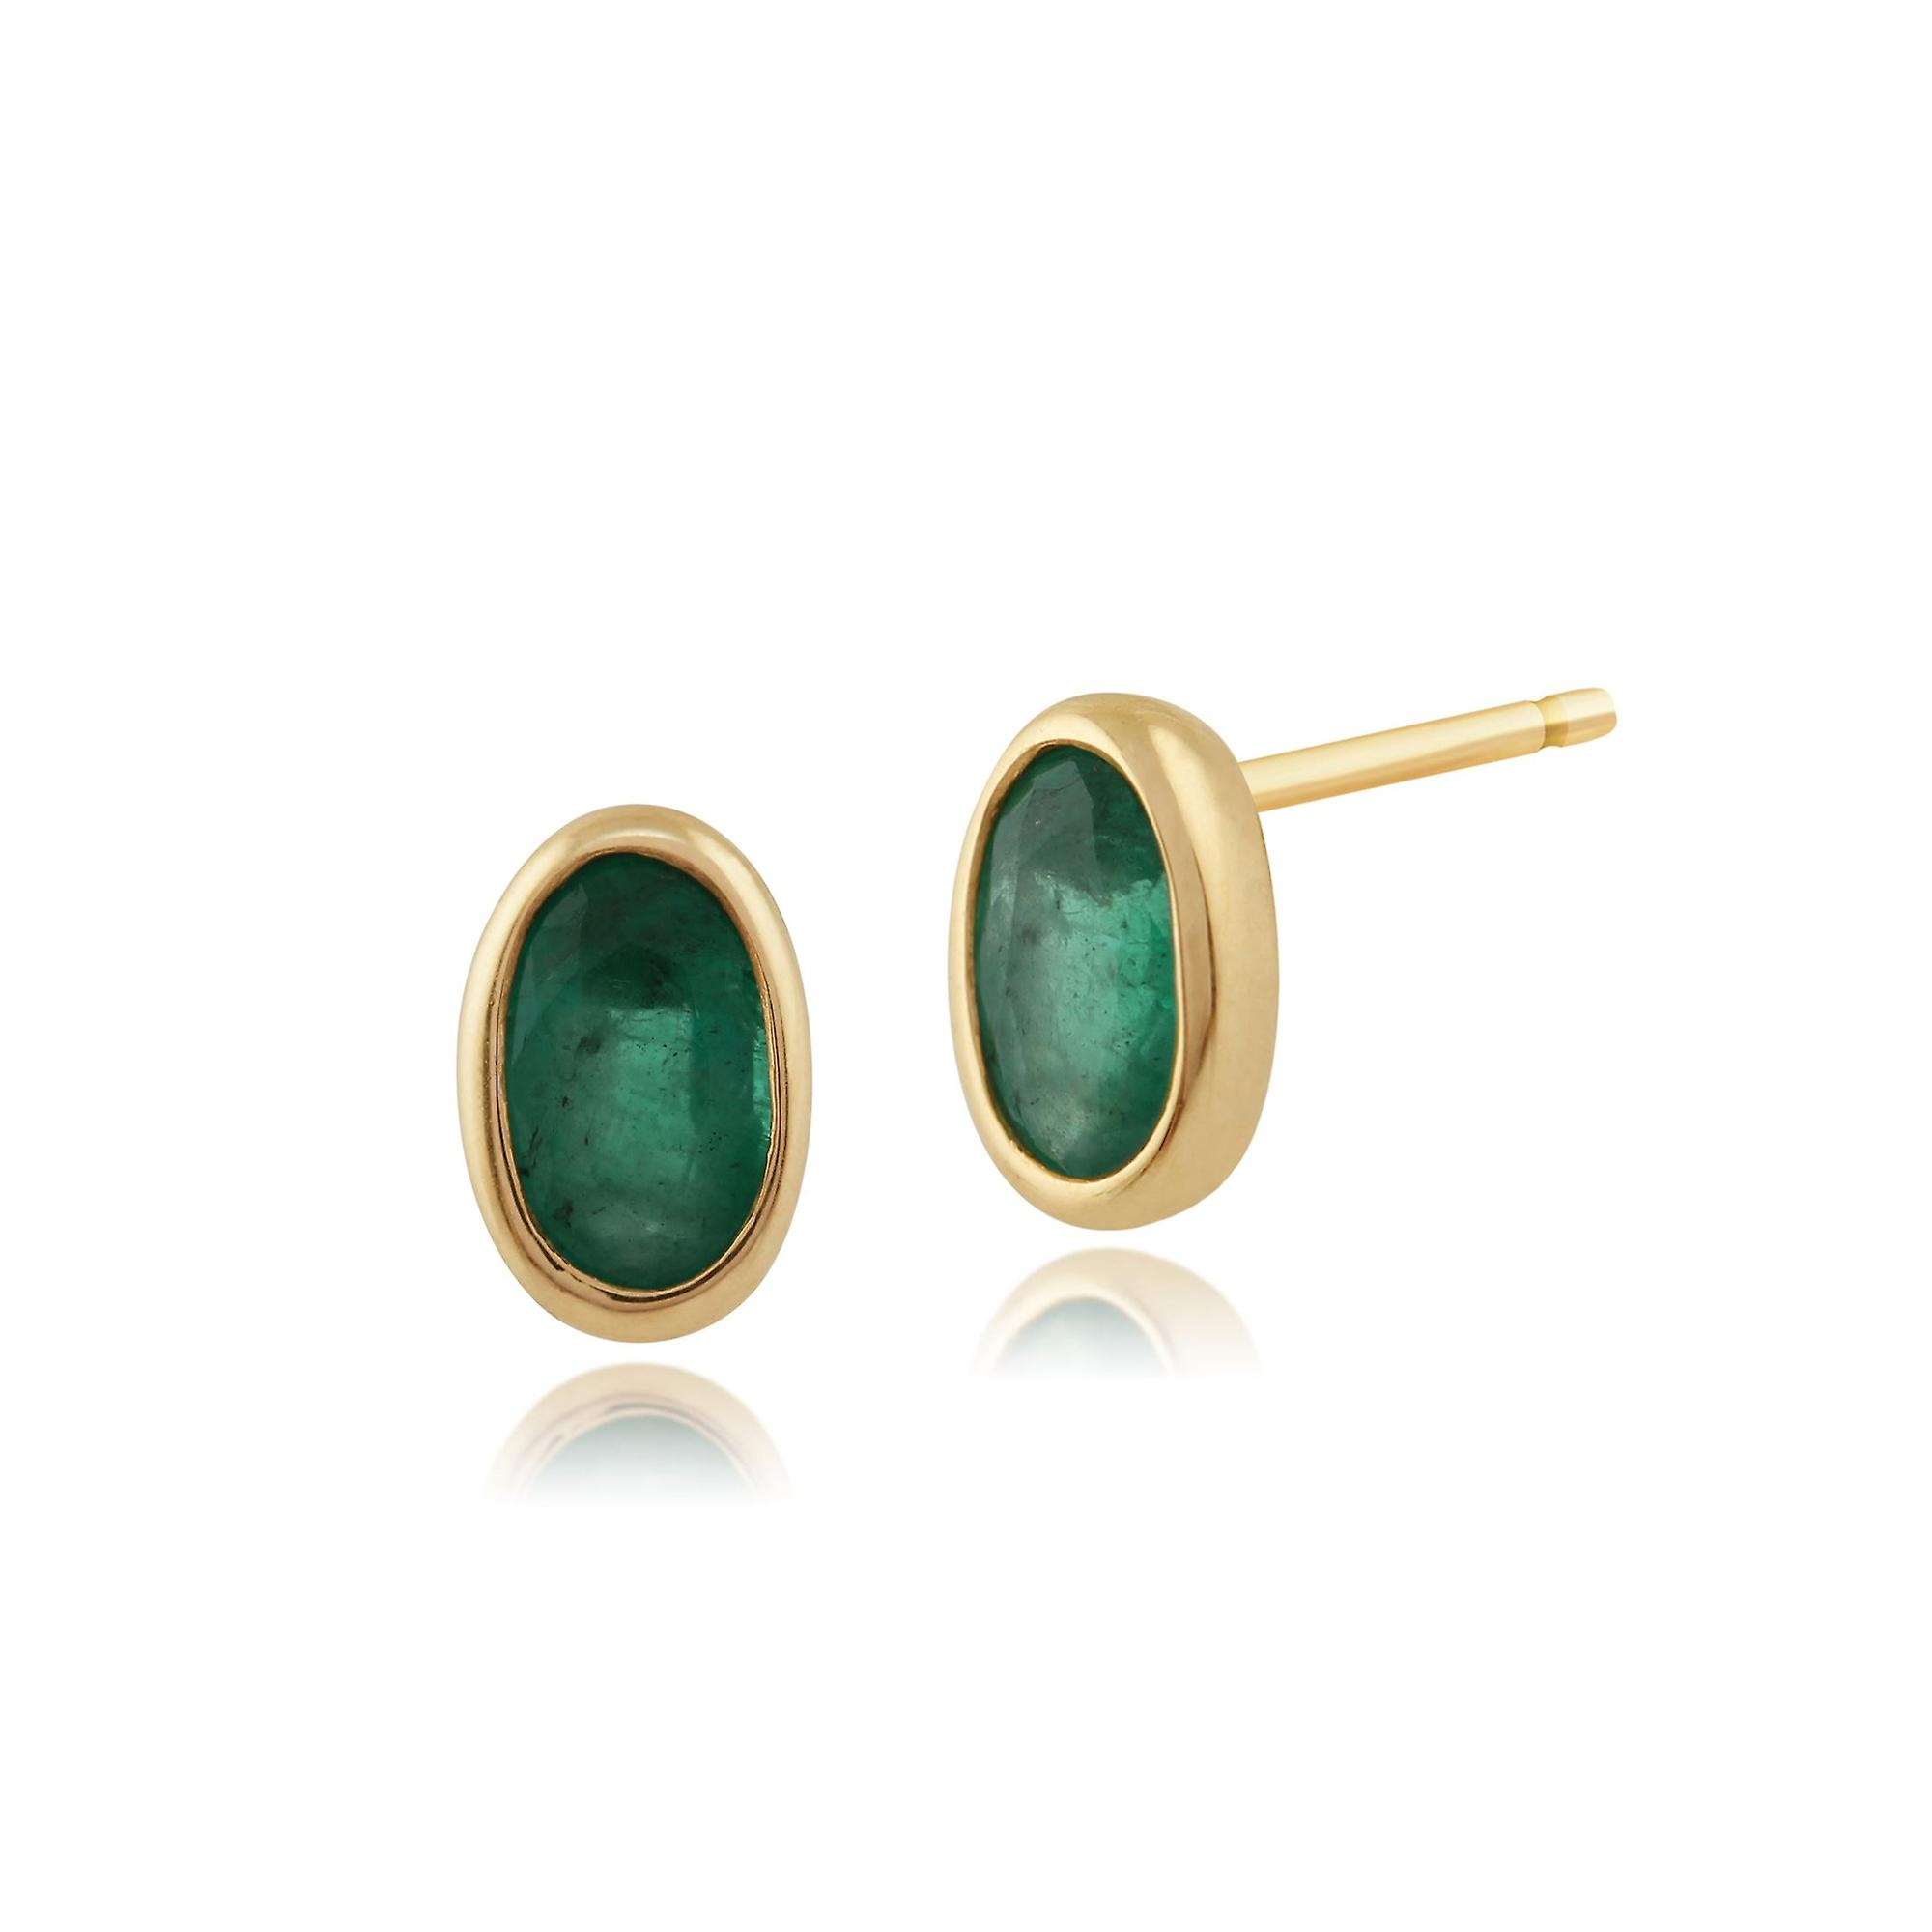 9ct Yellow Gold 0.51ct Natural Emerald Framed Oval Stud Earrings